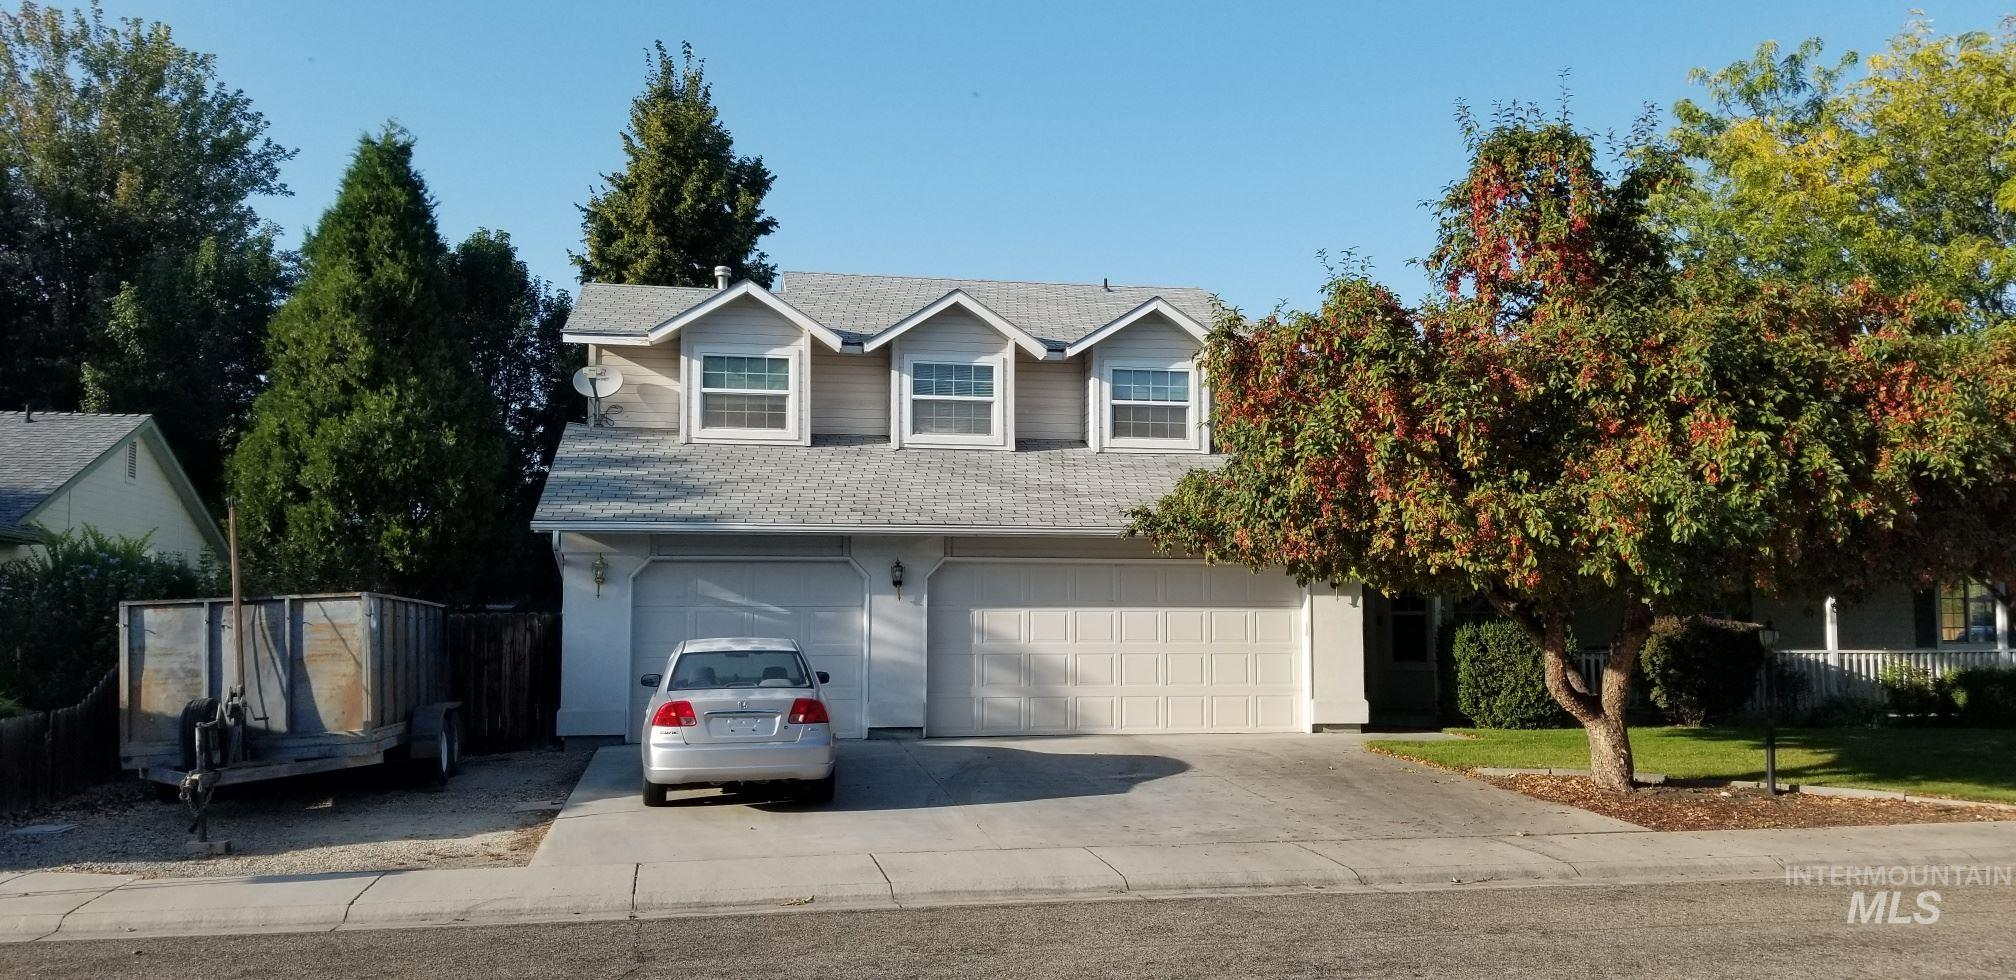 1522 E Bishop Dr, Eagle, Idaho 83616, 4 Bedrooms, 2.5 Bathrooms, Residential For Sale, Price $389,500, 98781569